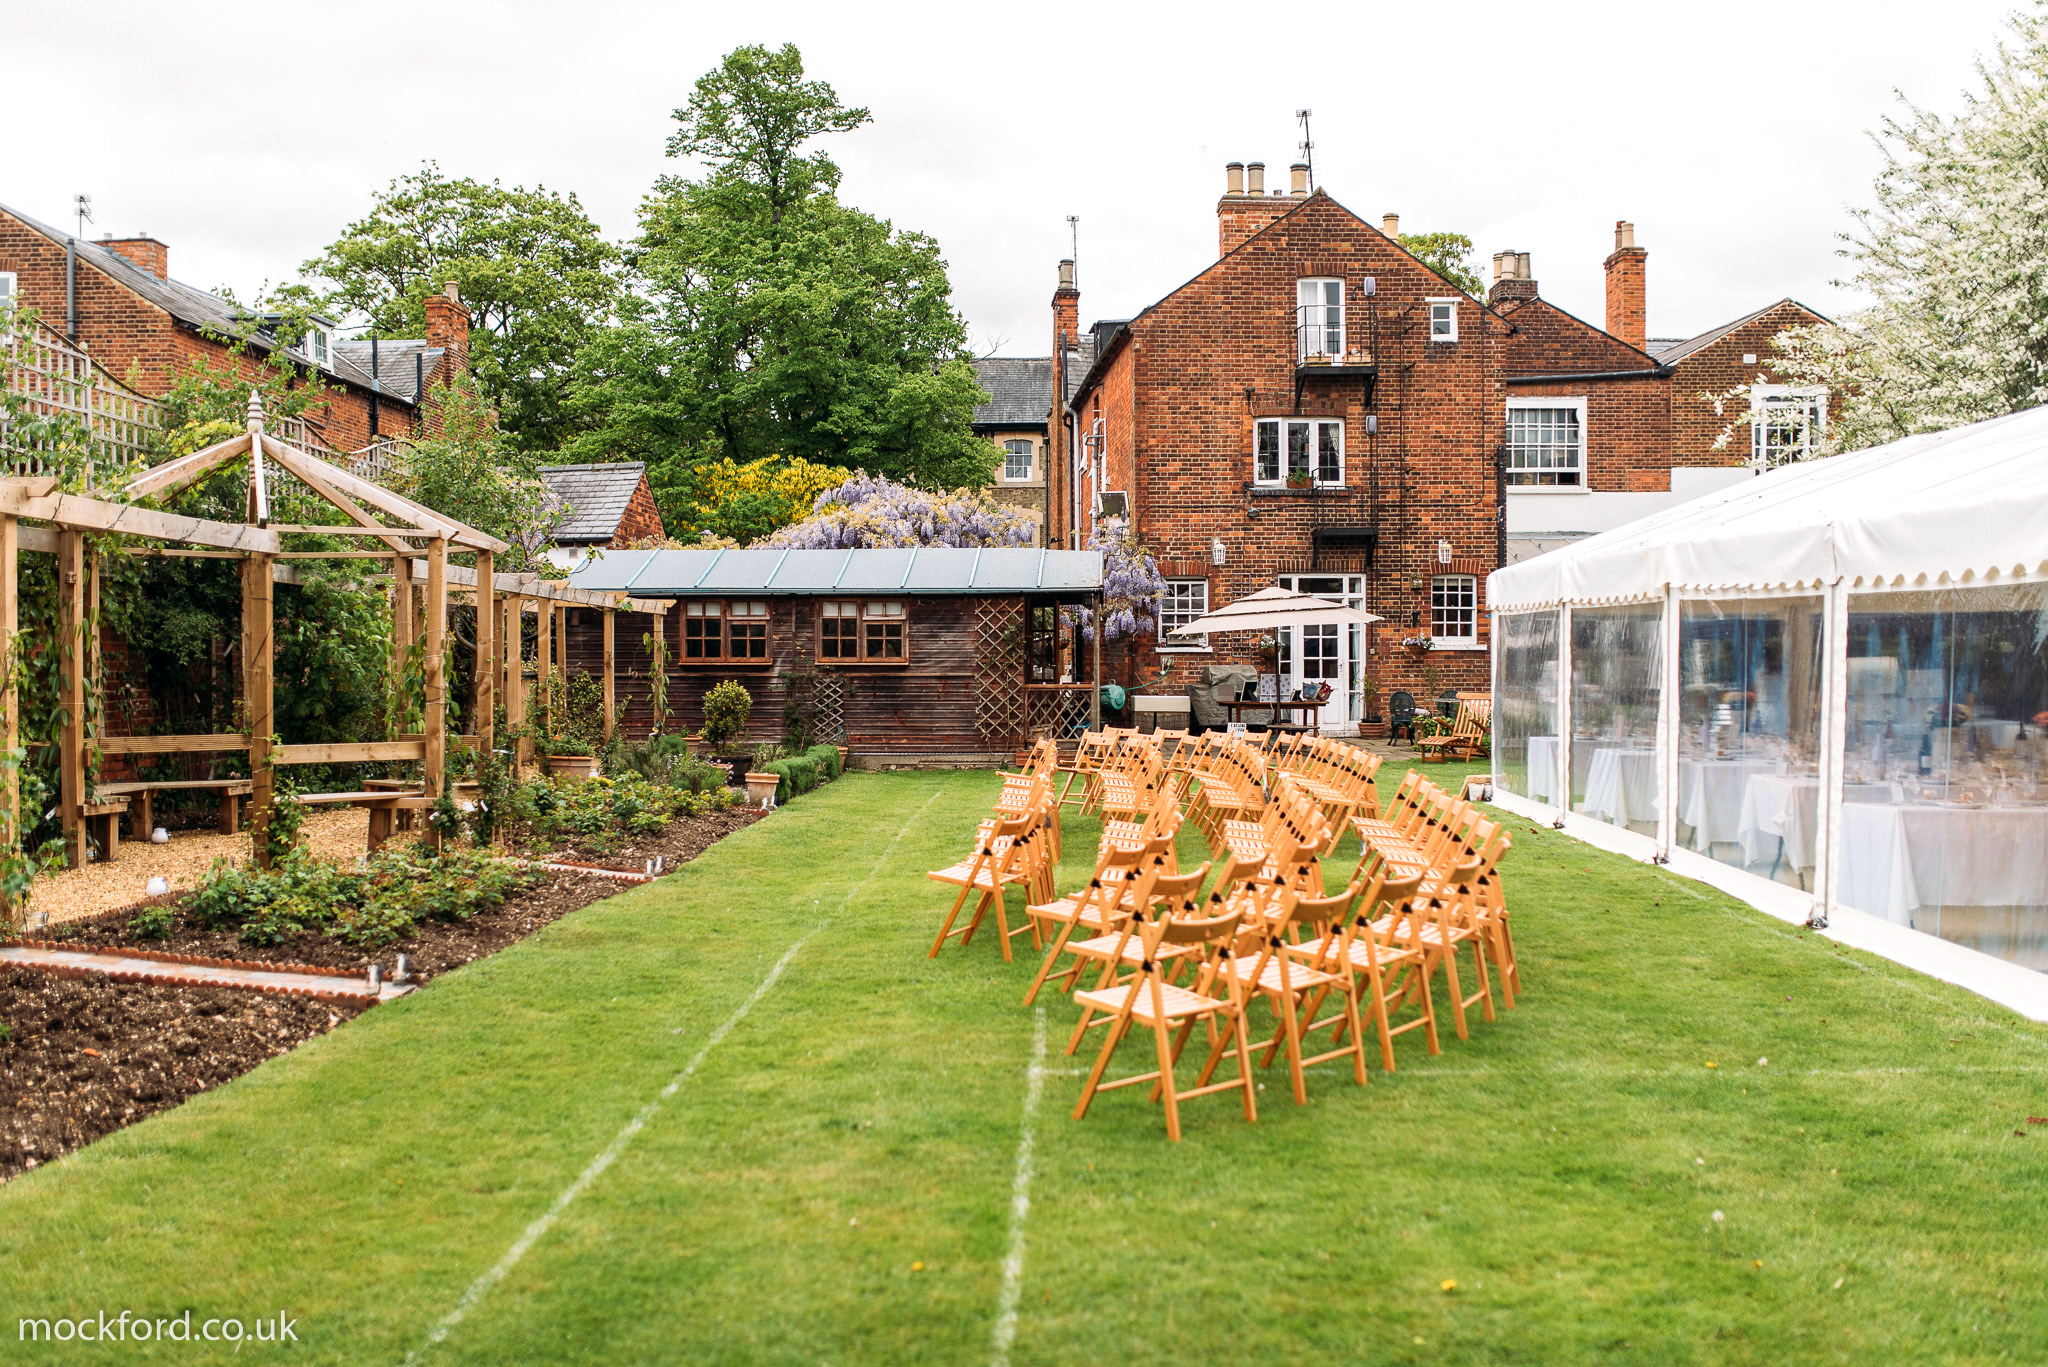 air bnb wedding venue chairs set up in traditional english garden